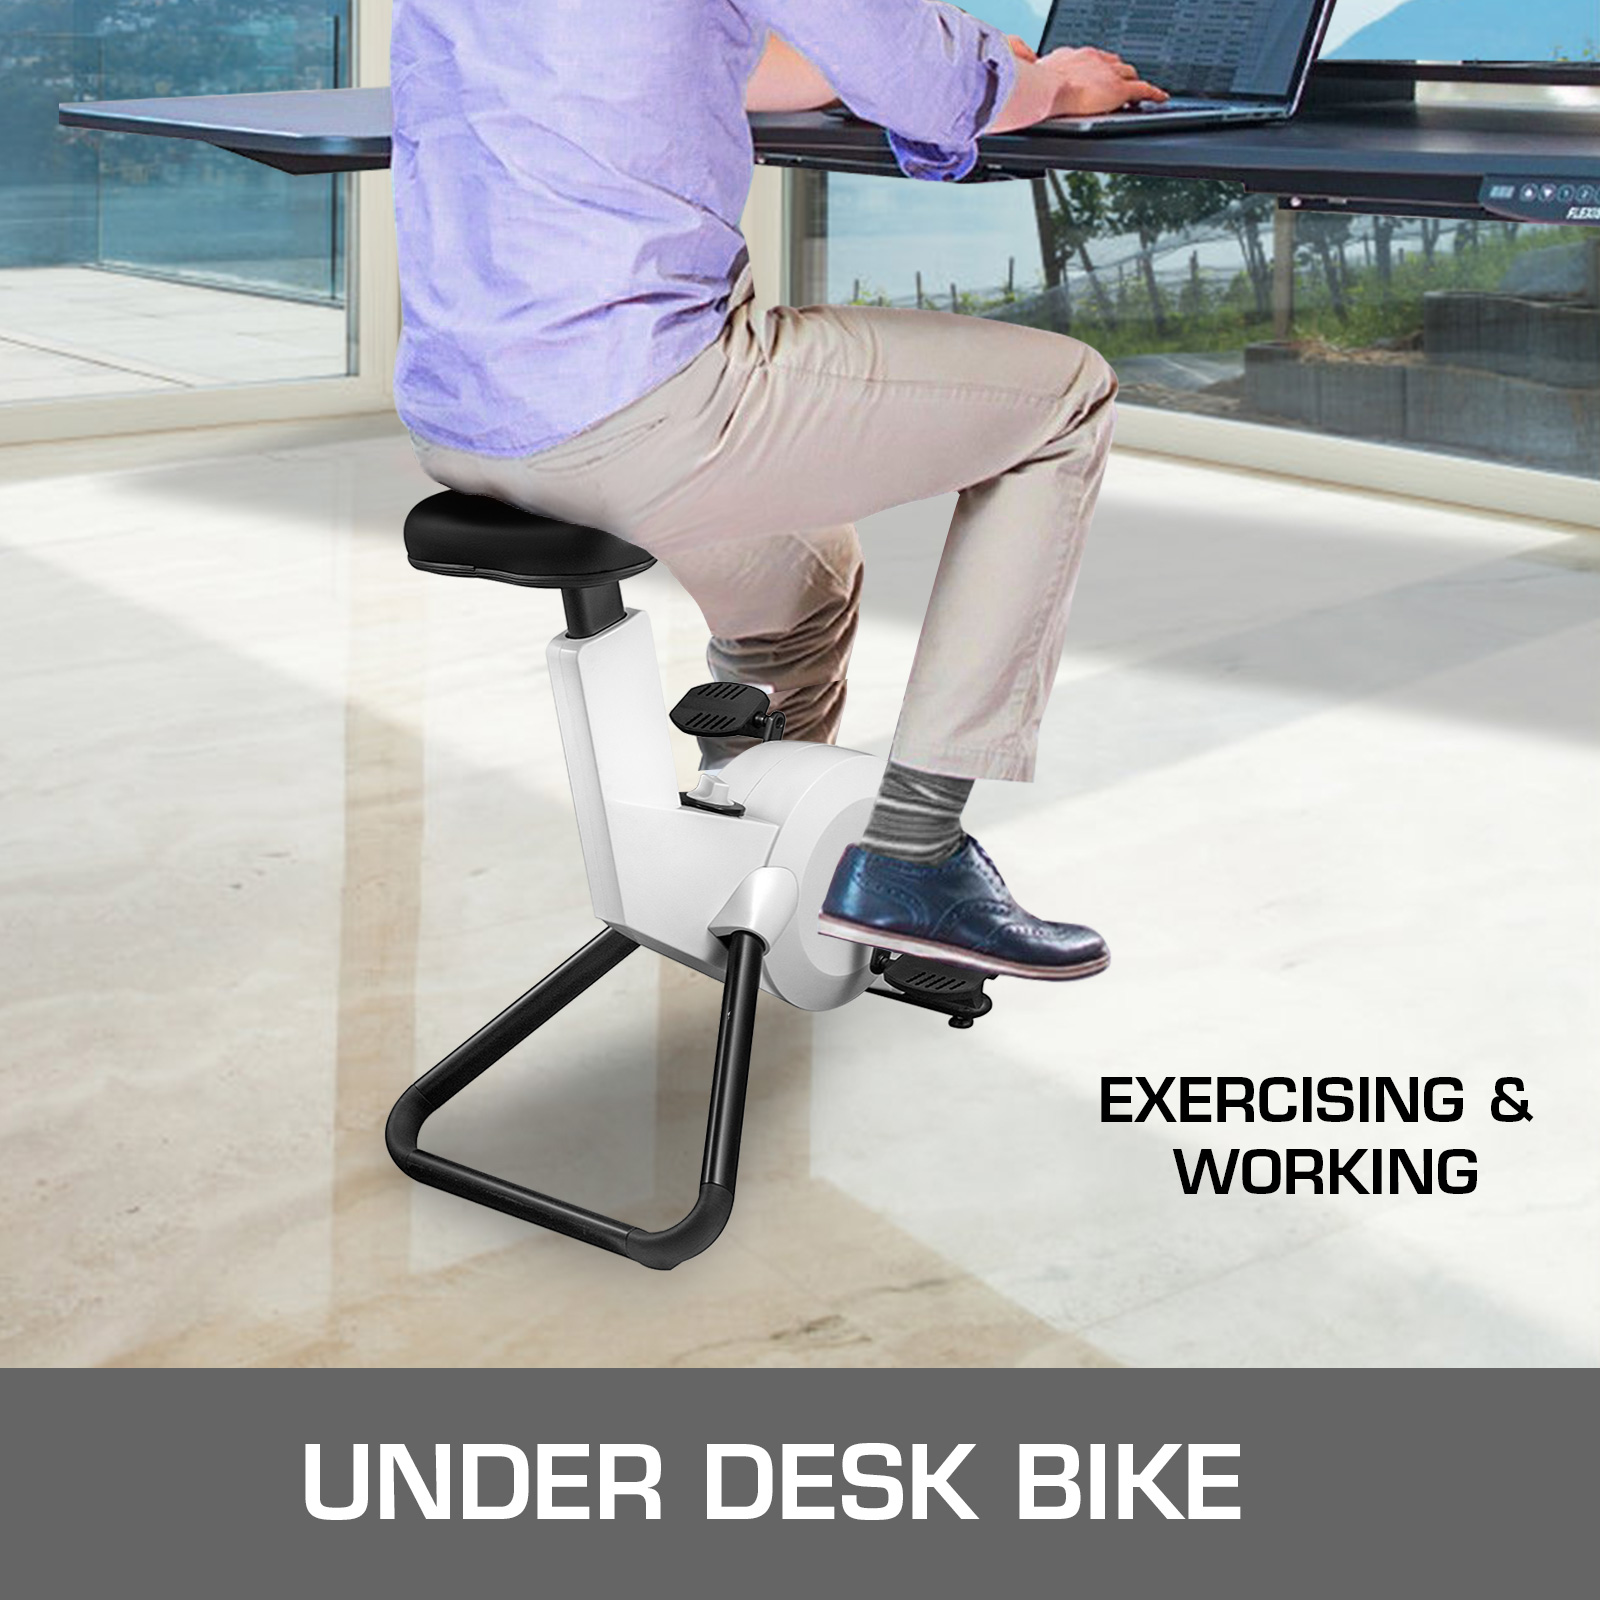 Multi-style-Magnetic-Exercise-Bike-office-Bicycle-under-Desk-Fitness-Cardio miniature 91